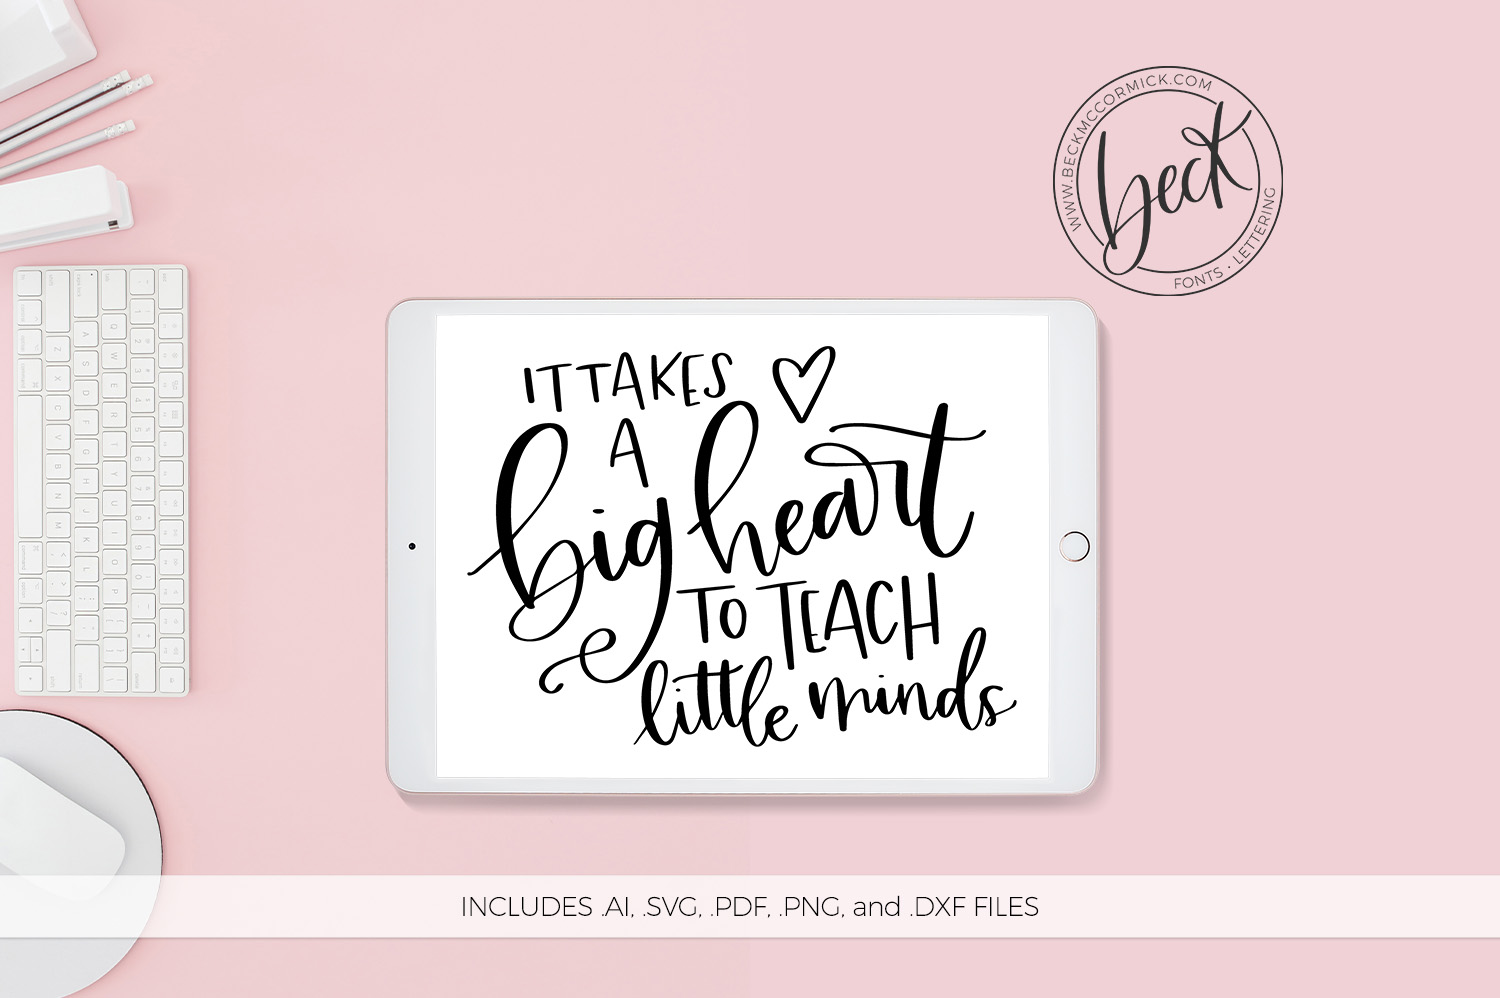 Download Free It Takes A Big Heart Graphic By Beckmccormick Creative Fabrica for Cricut Explore, Silhouette and other cutting machines.